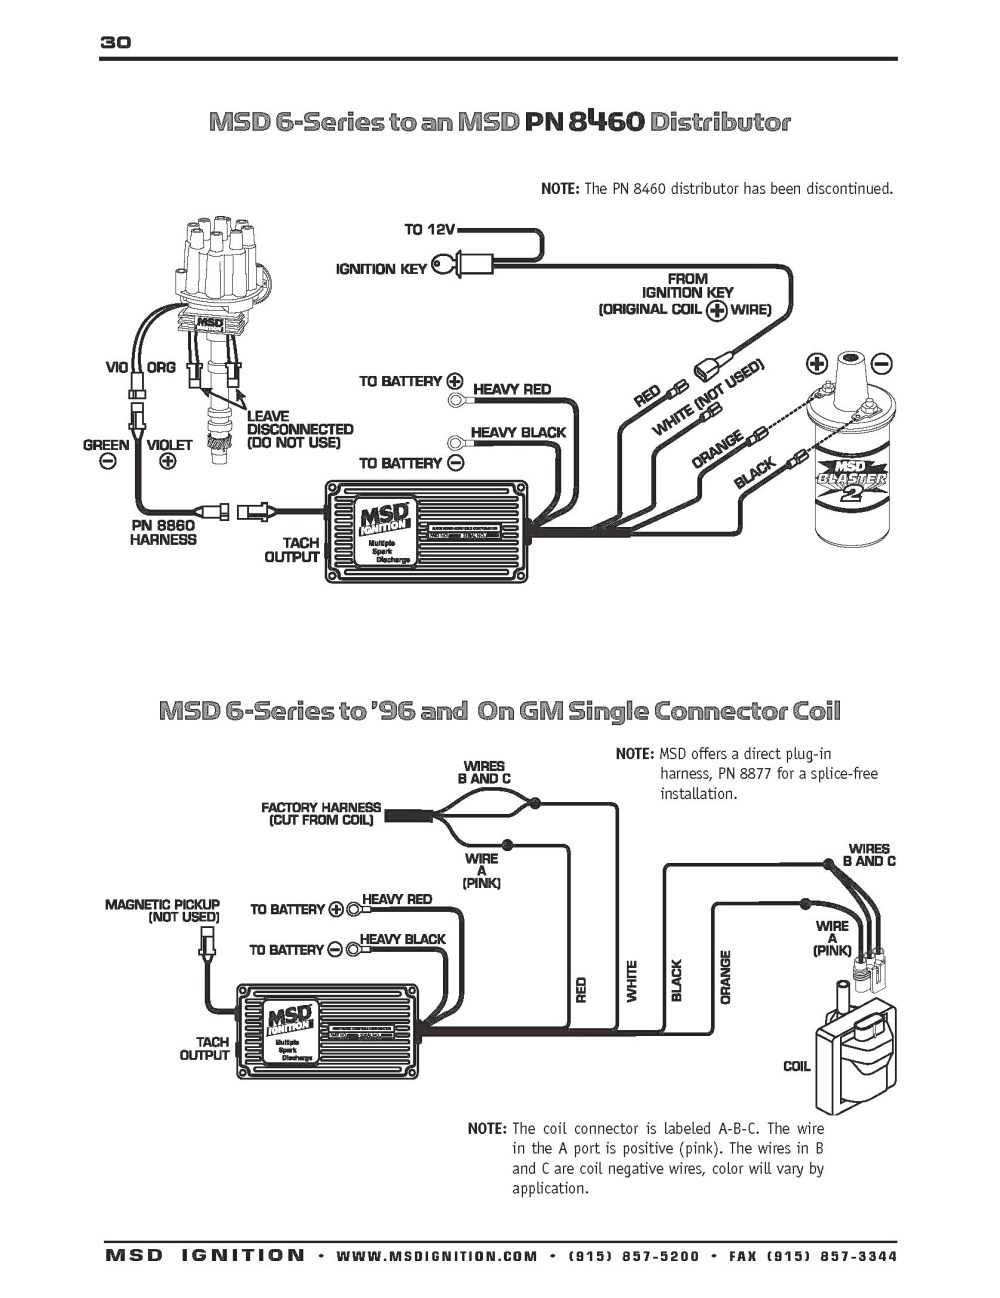 medium resolution of mallory distributor wiring diagram with msd great installation of rh mauriciolemus com mallory unilite distributor wiring